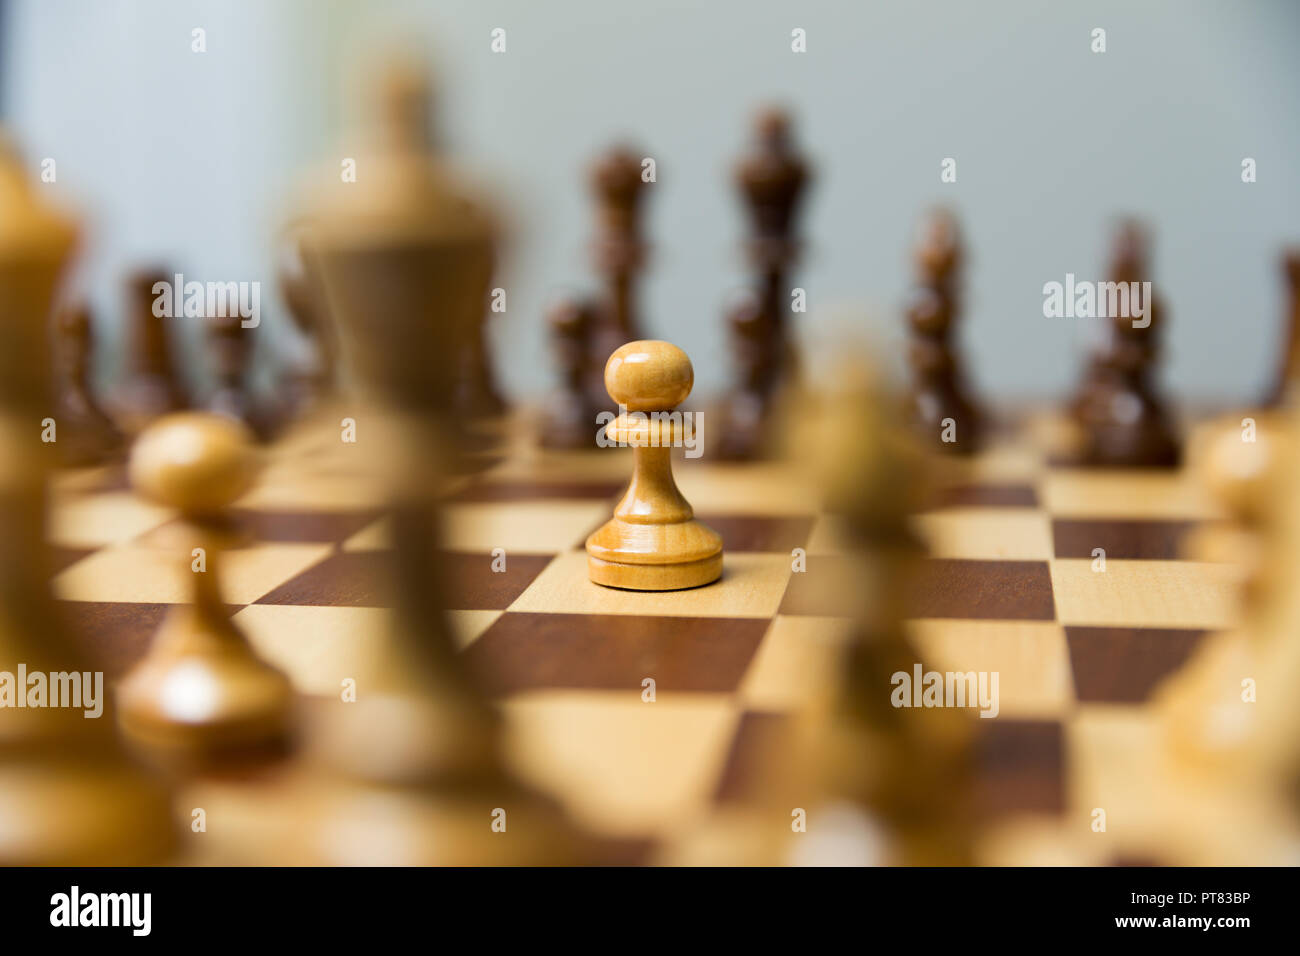 Pawn standing in the middle of chess board. Courage and leadership concept. - Stock Image